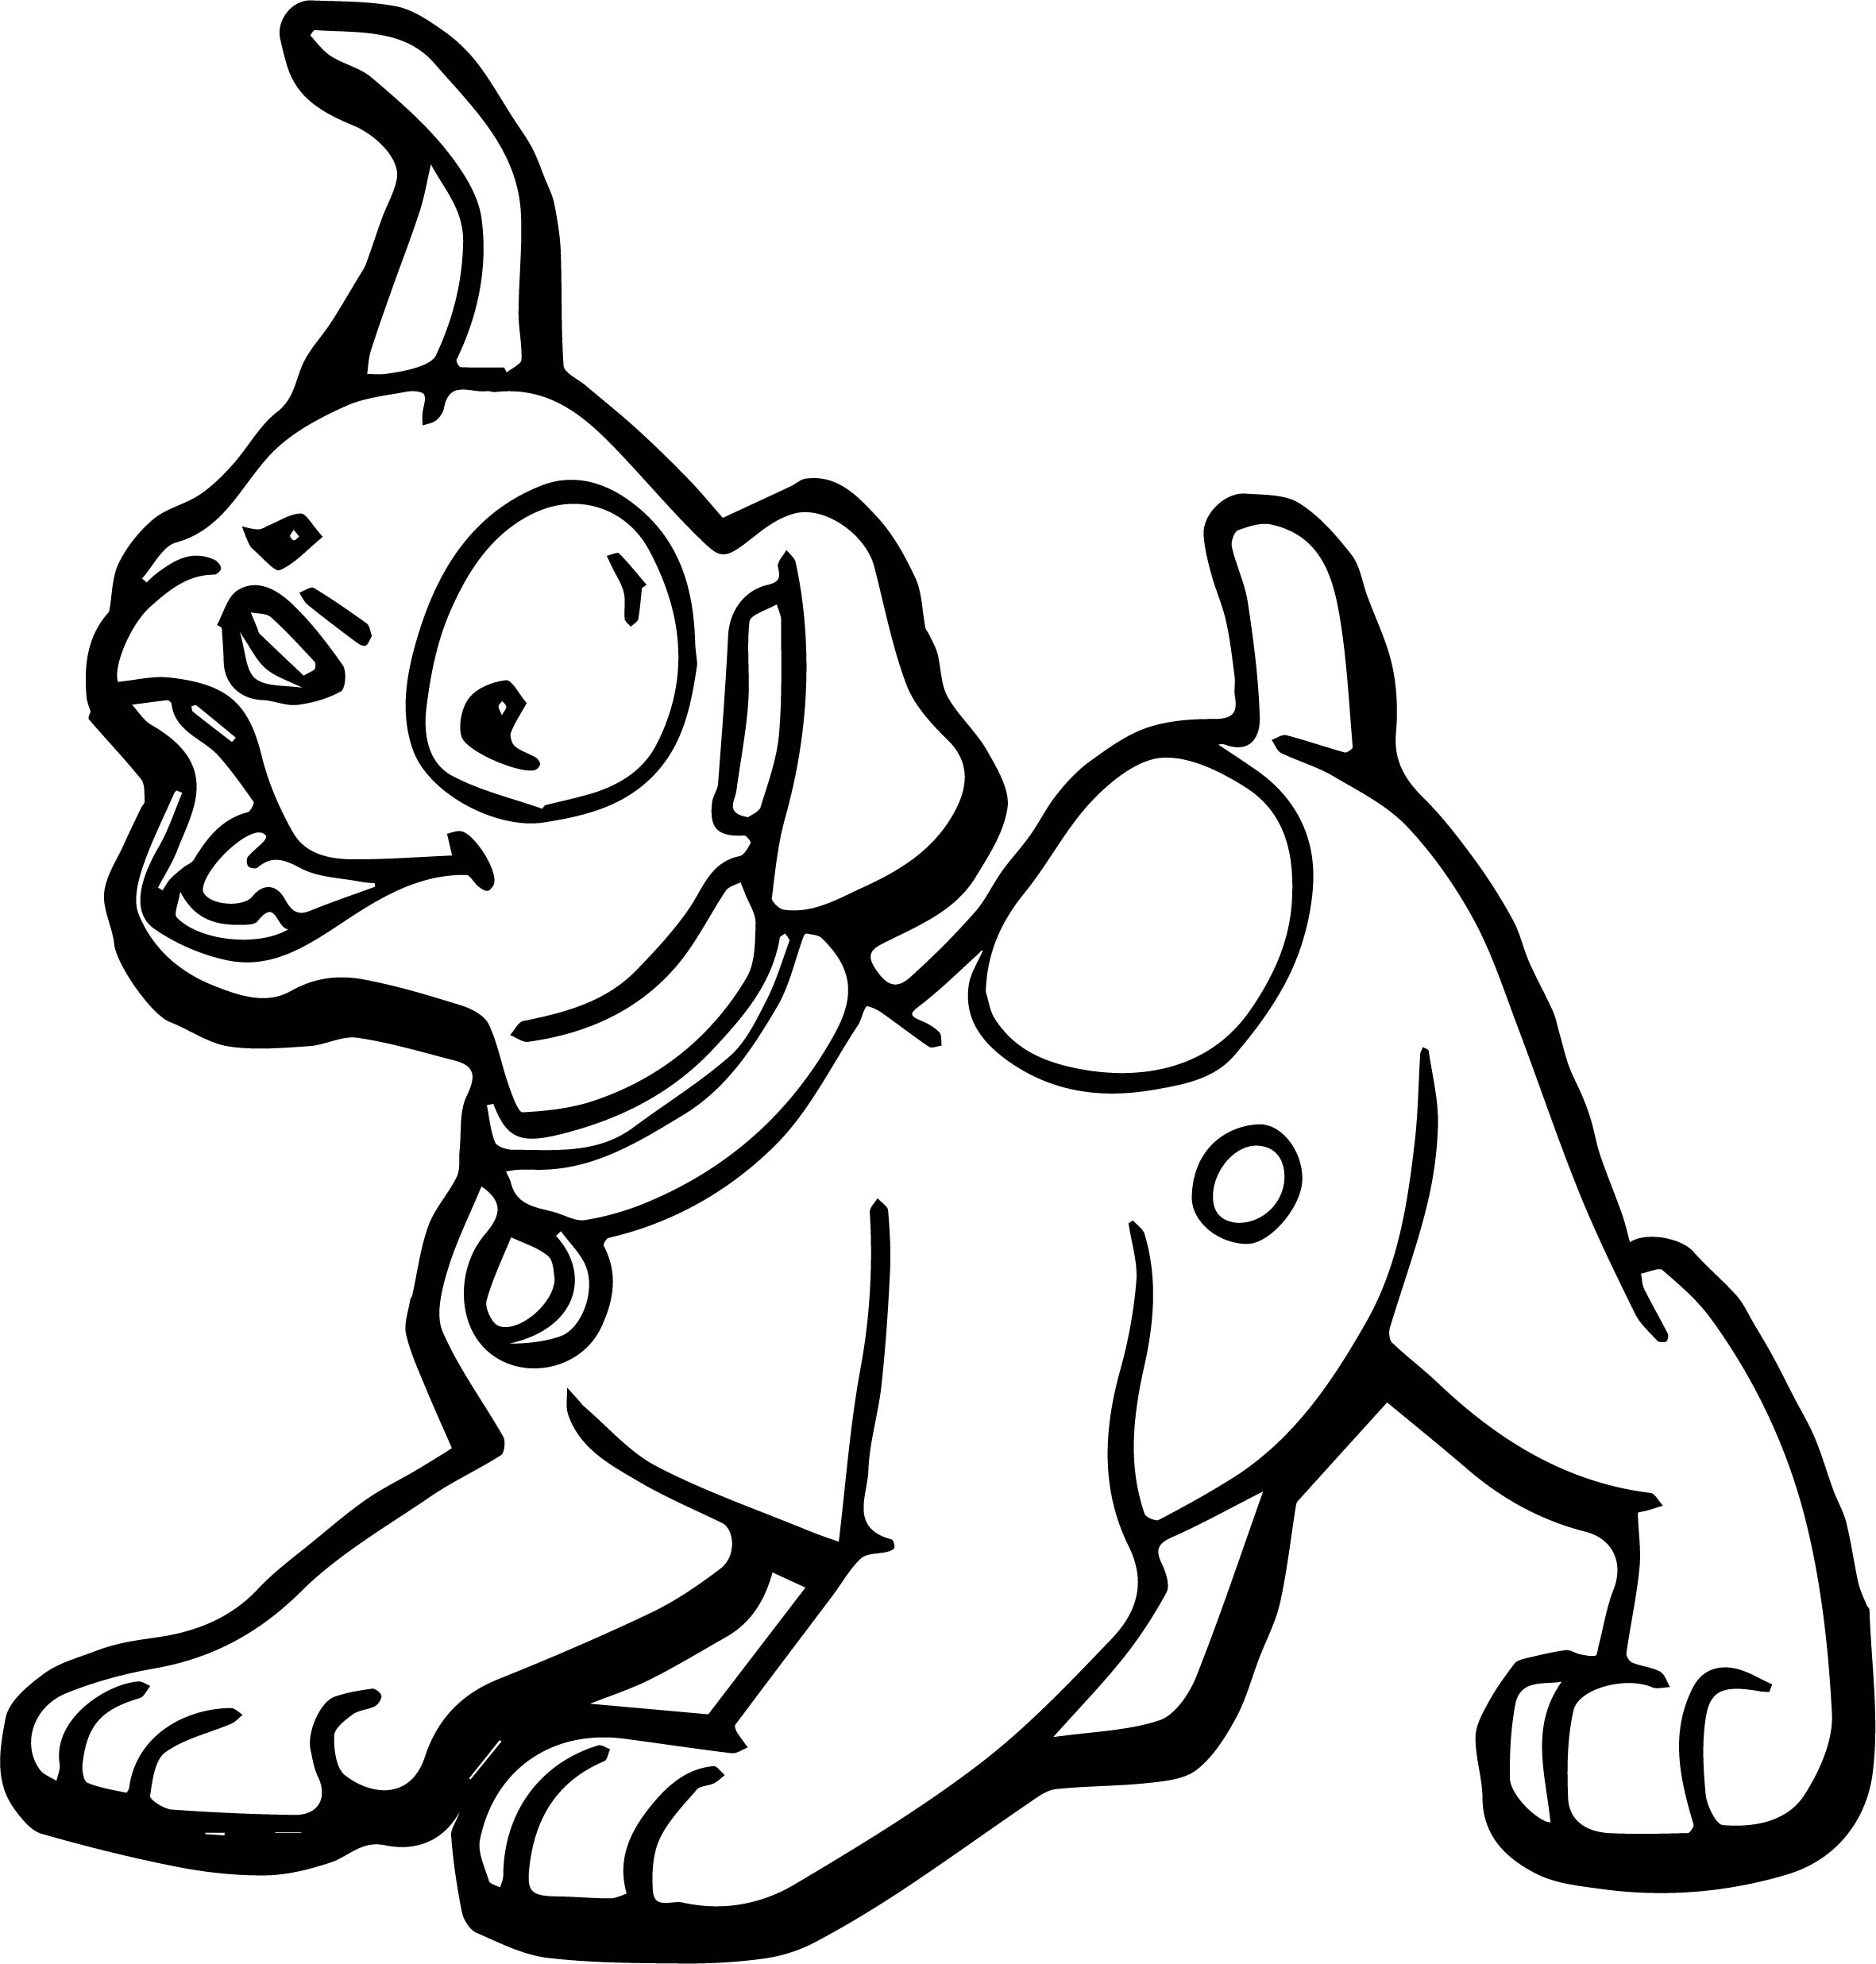 Chauffeur Puppy Dog Coloring Page